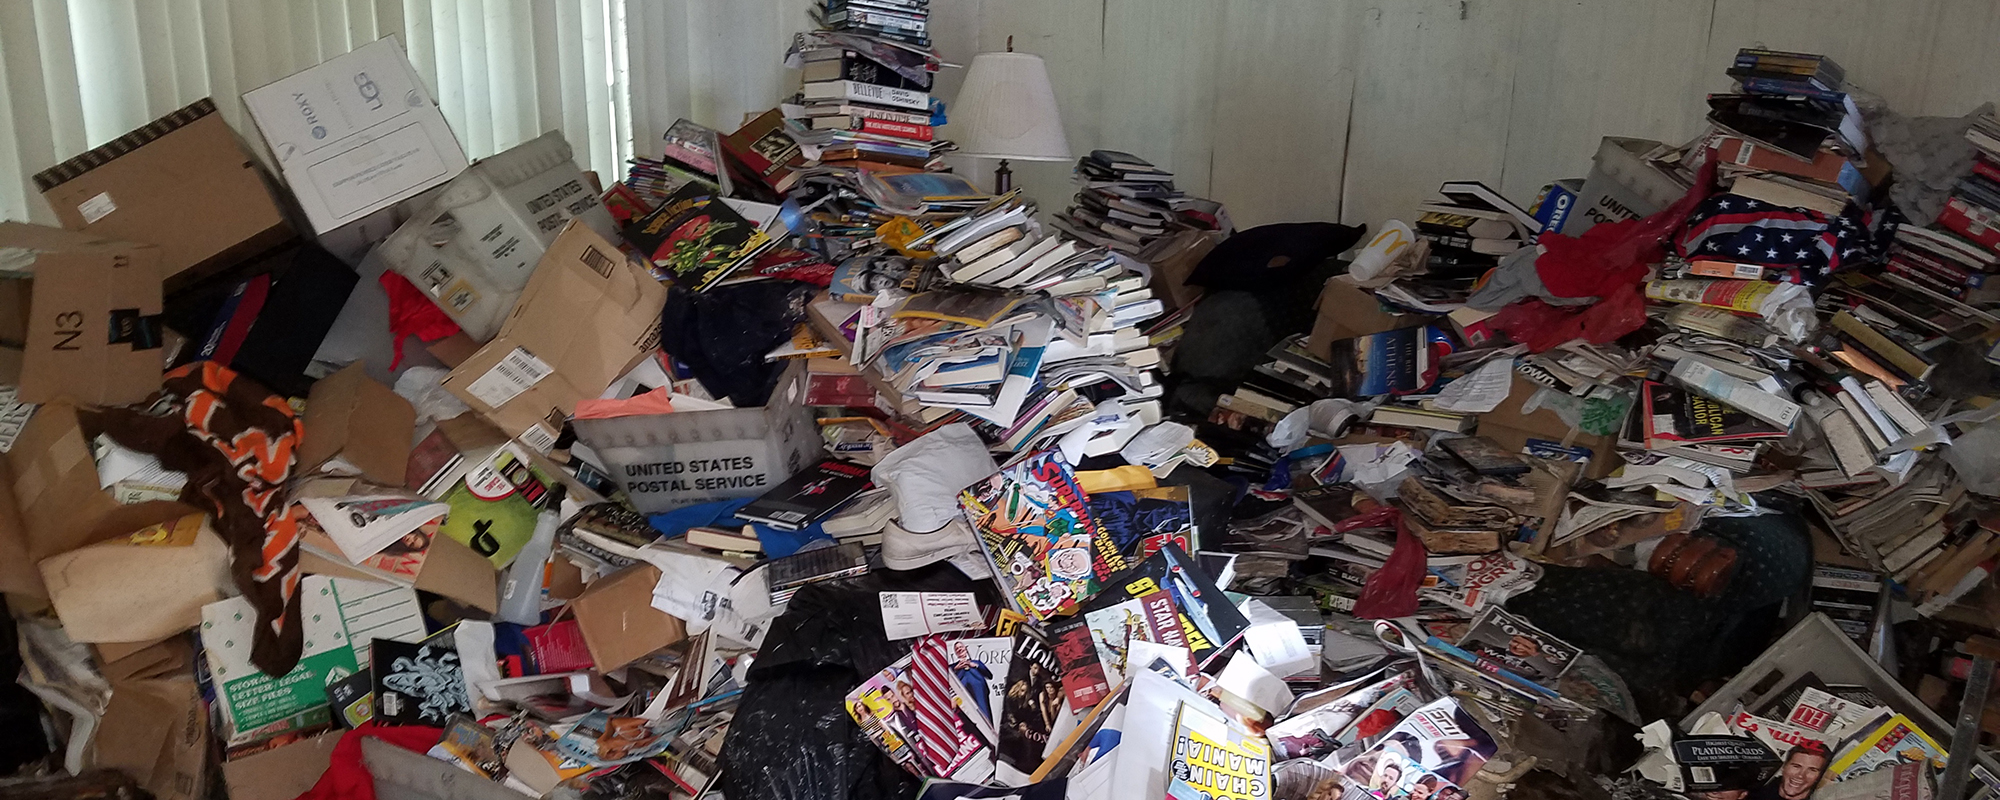 health and safety risks of hoarding nj